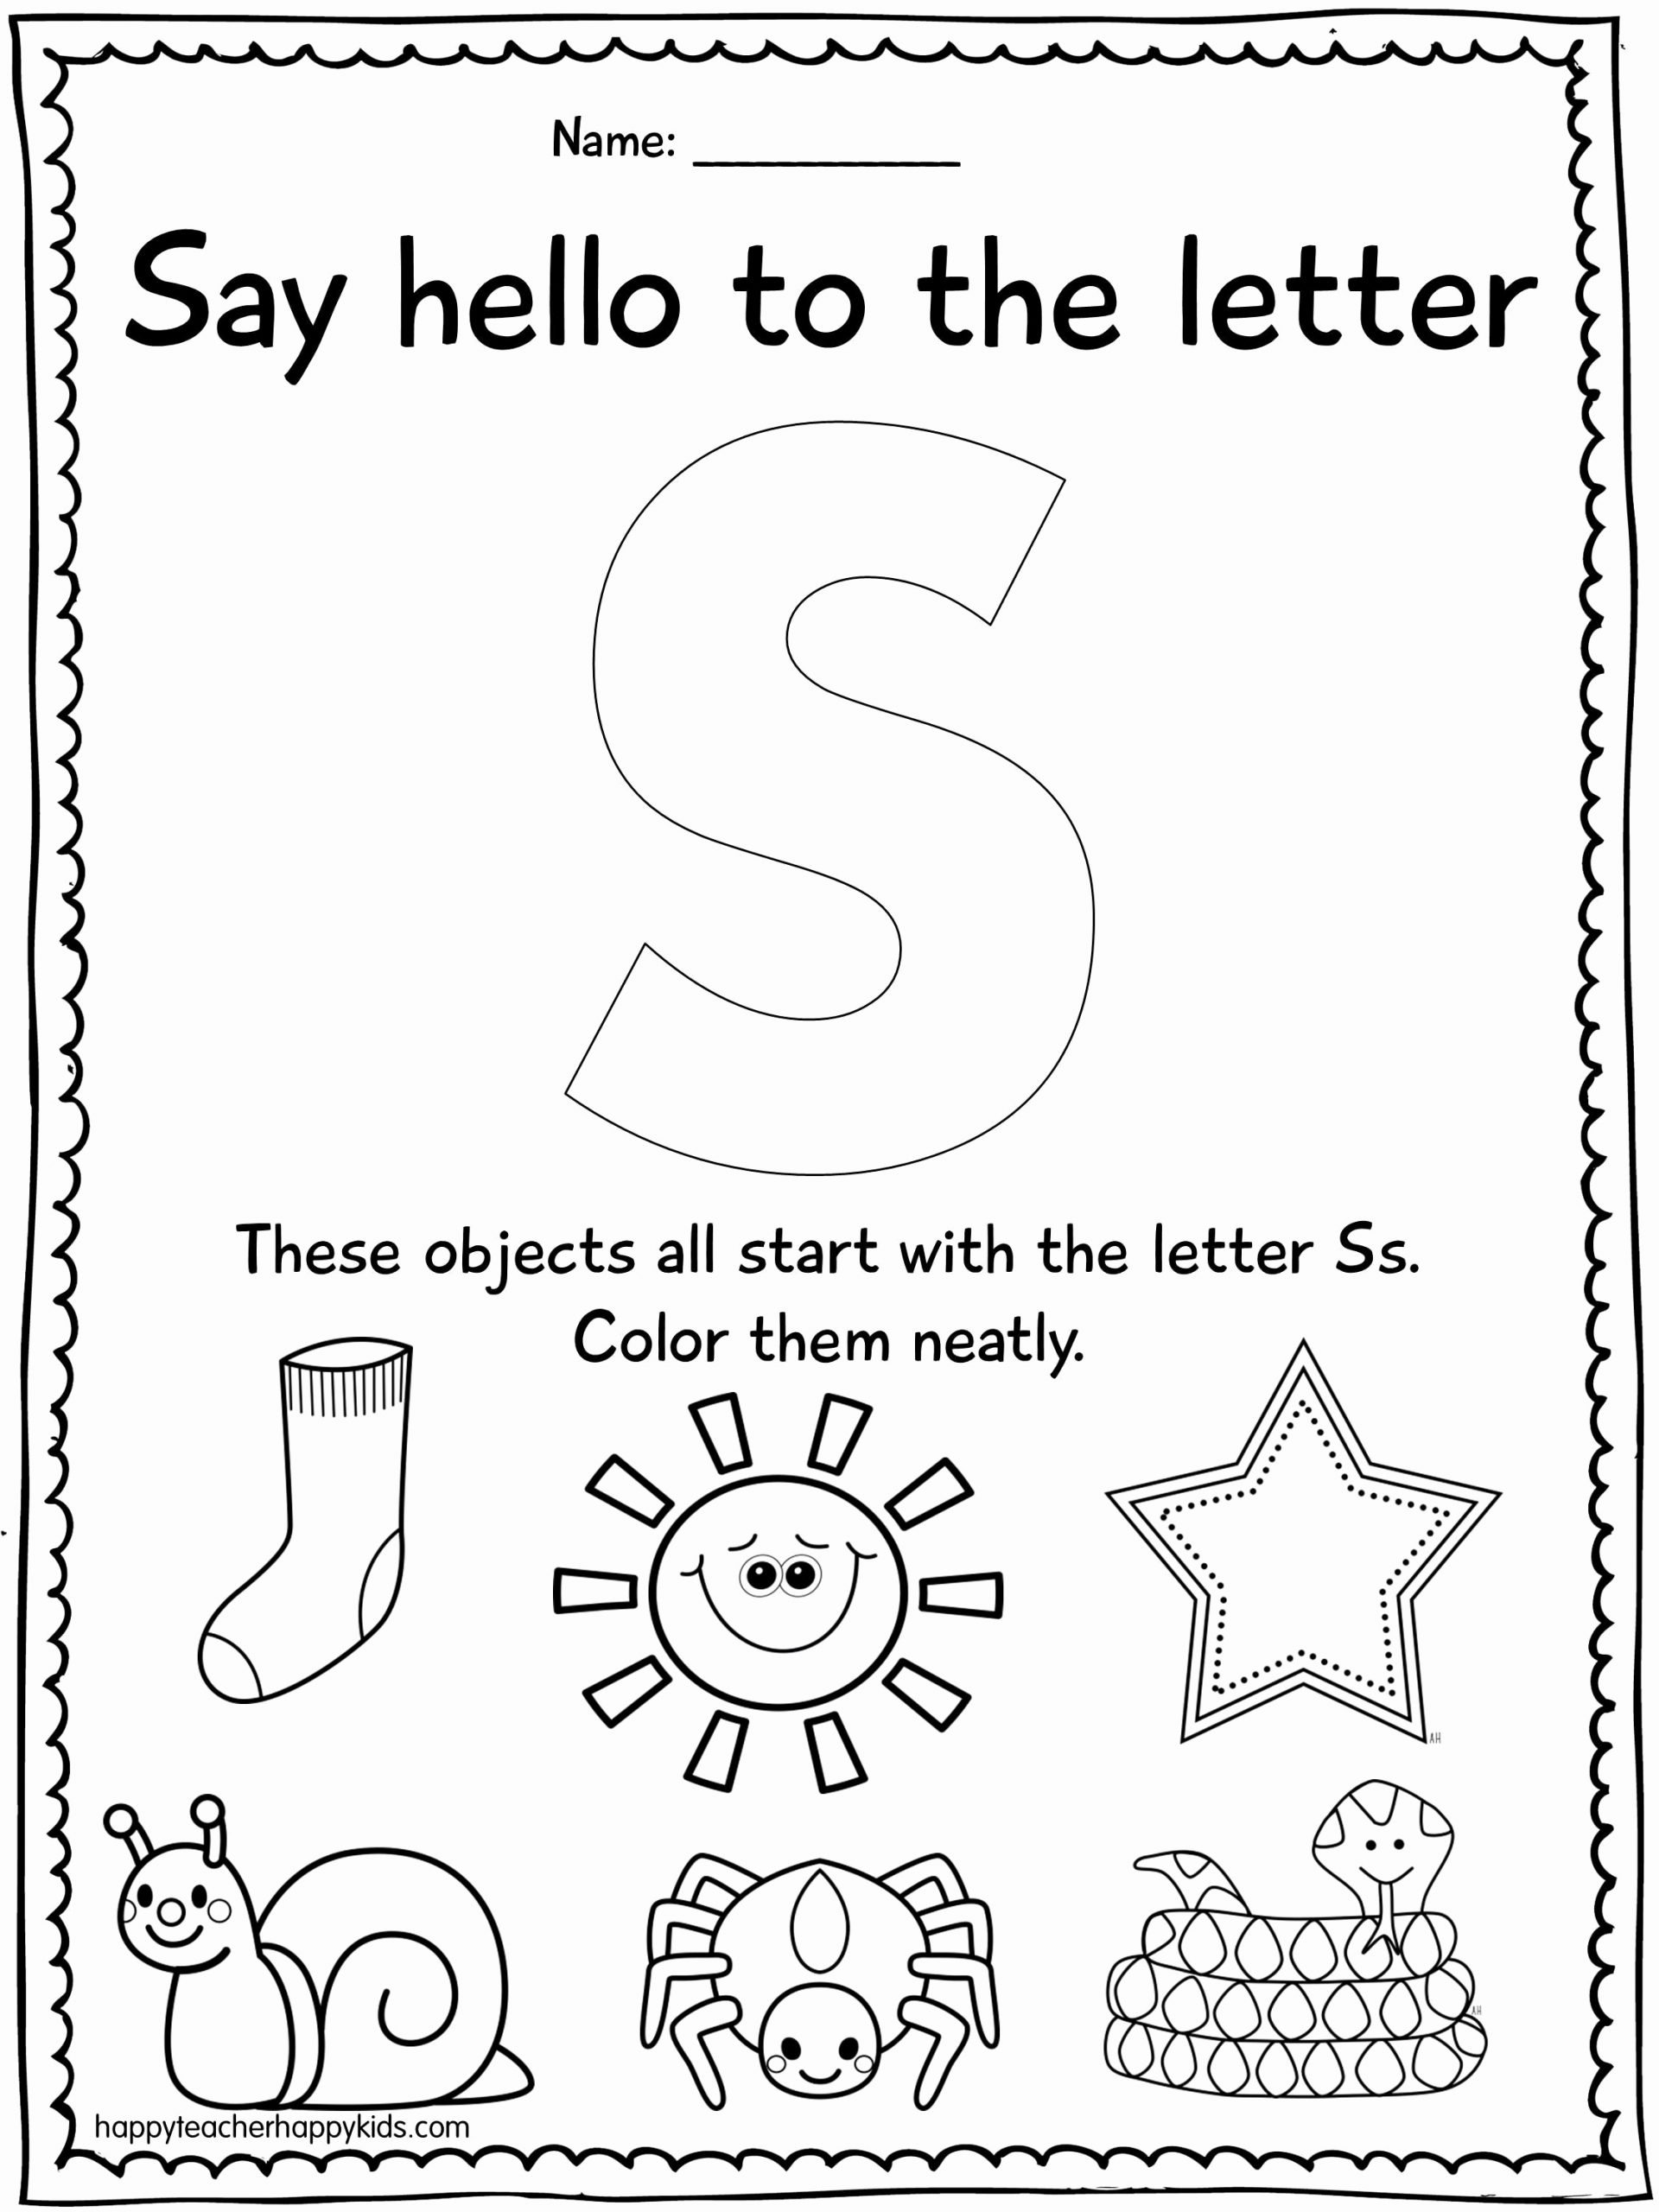 Letter S Worksheets for Preschoolers Unique Alphabet Activities for the Letter S Perfect for Preschool